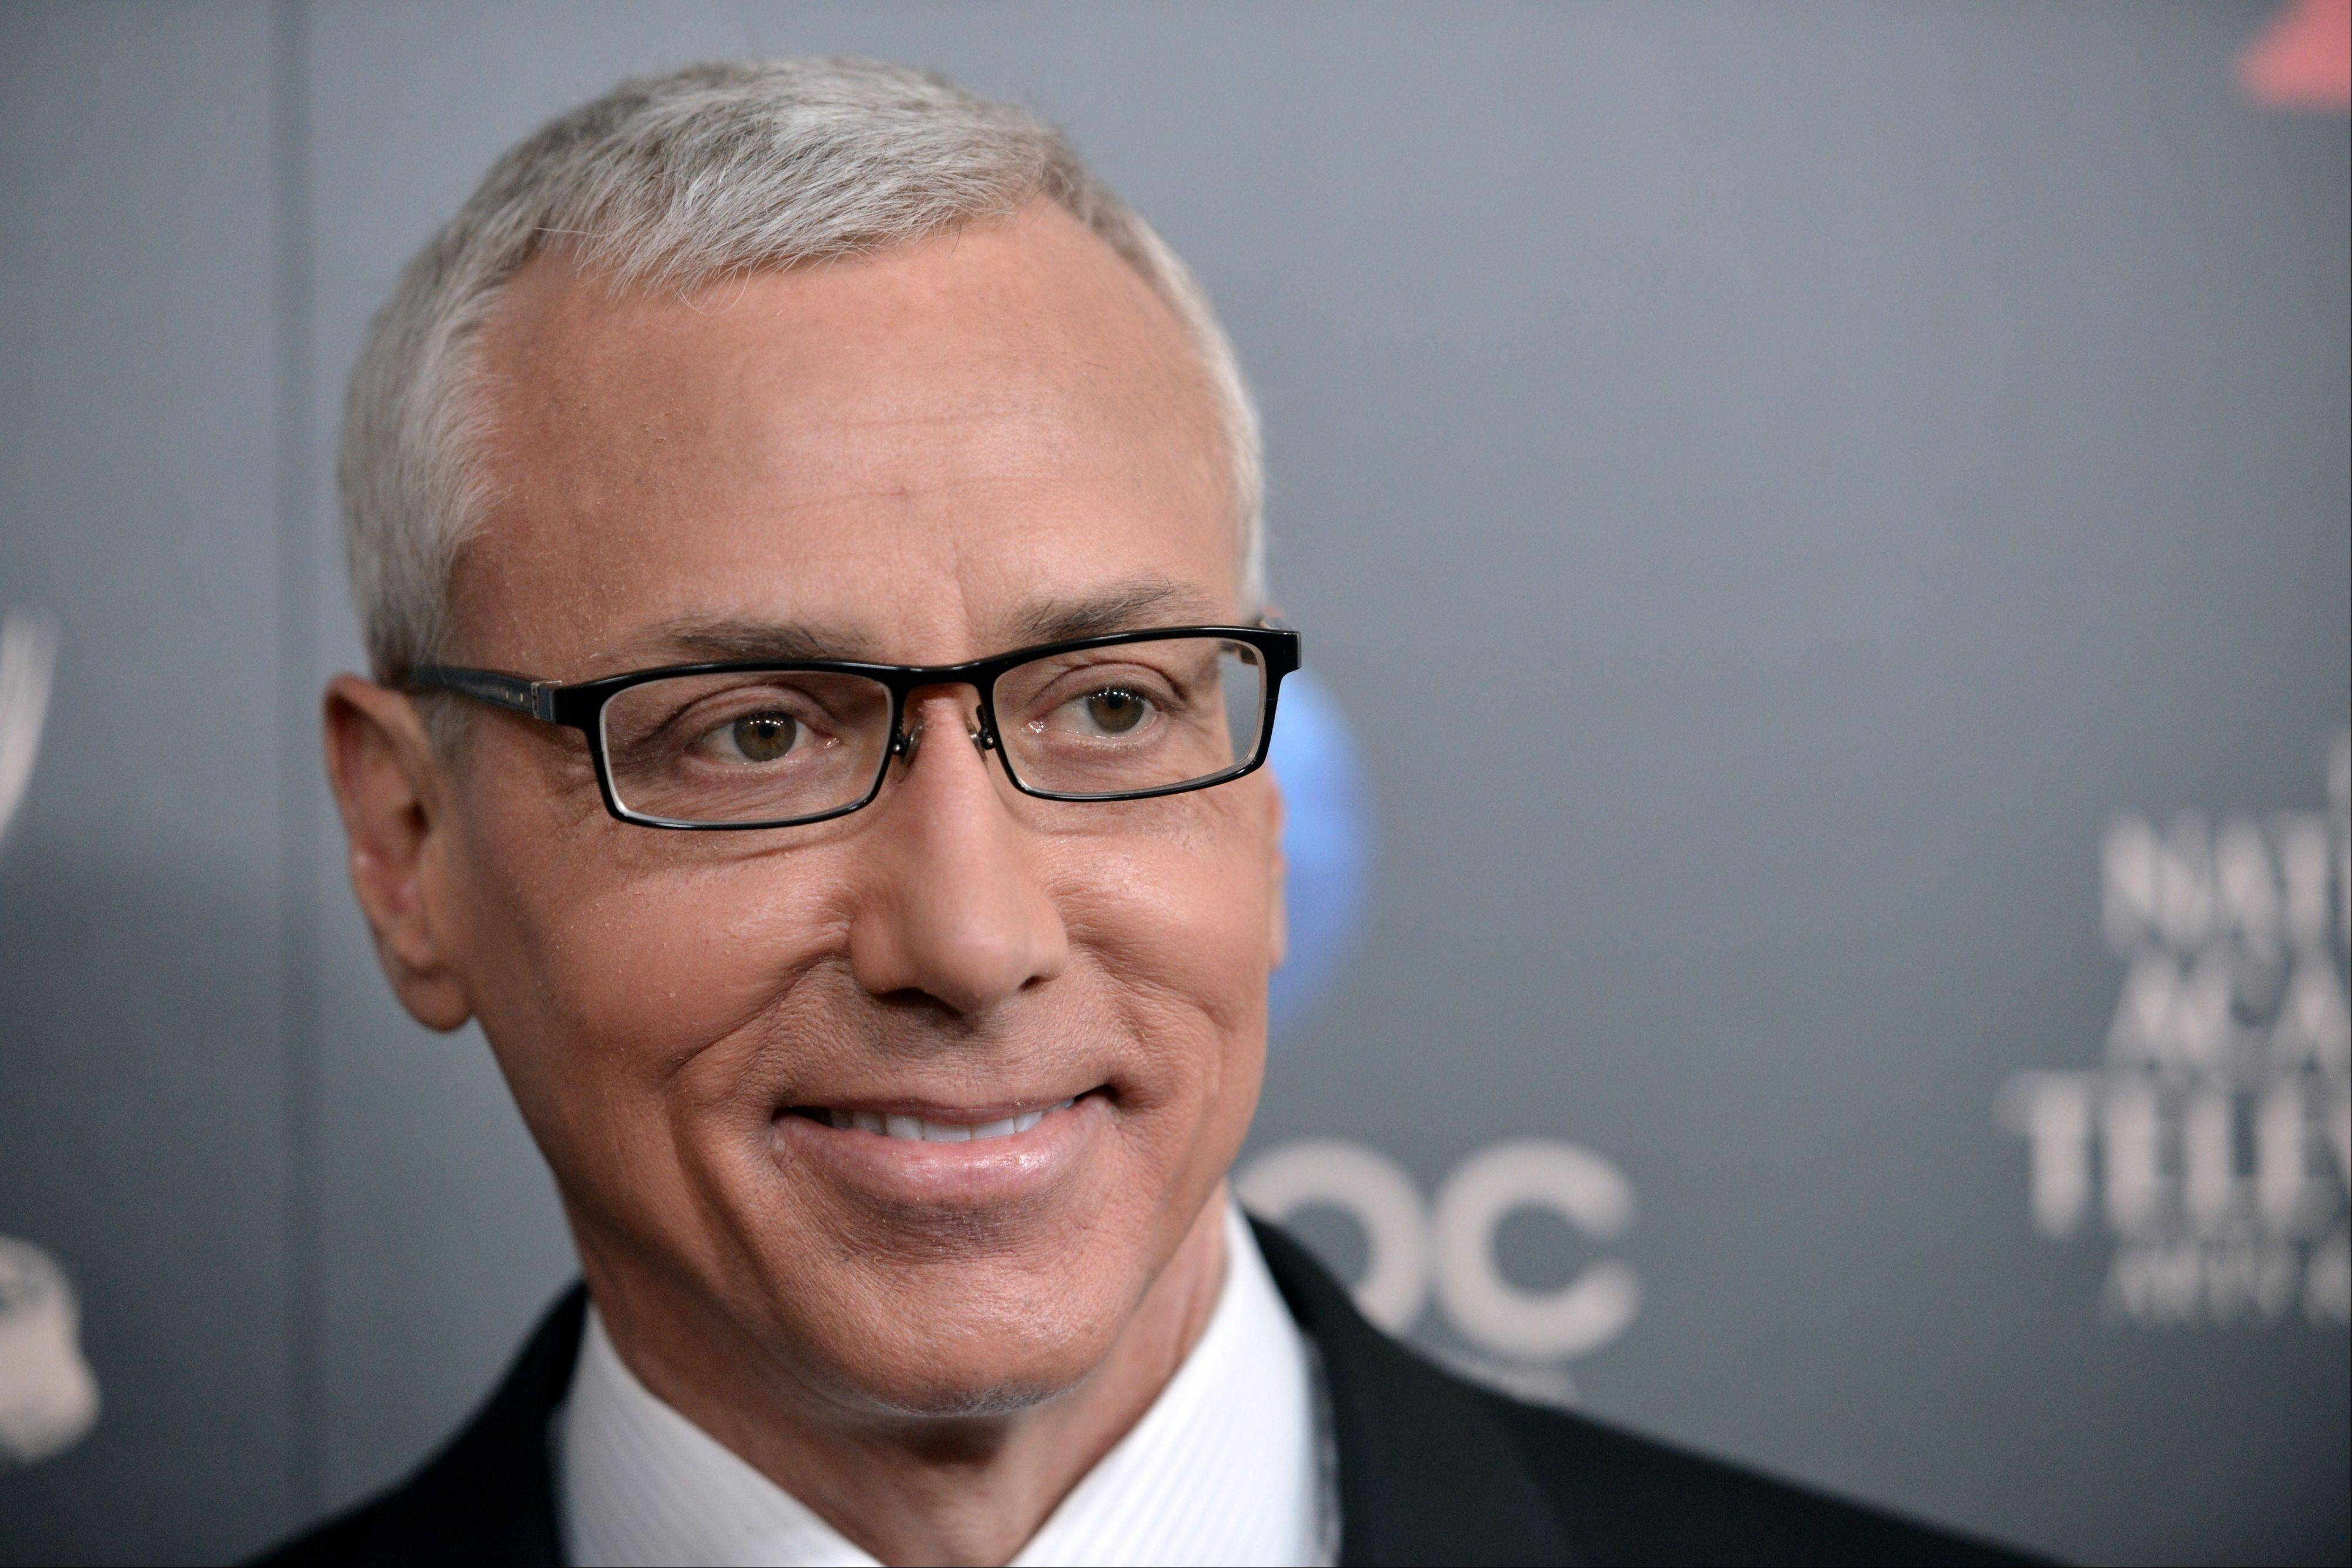 Dr. Drew Pinsky says he had his prostate removed earlier this year after discovering he had cancer. The host of HLN�s �Dr. Drew on Call� wrote Tuesday, Sept. 24, 2013, on the network�s site that he returned to work in 10 days after having a robotic prostatectomy in July.